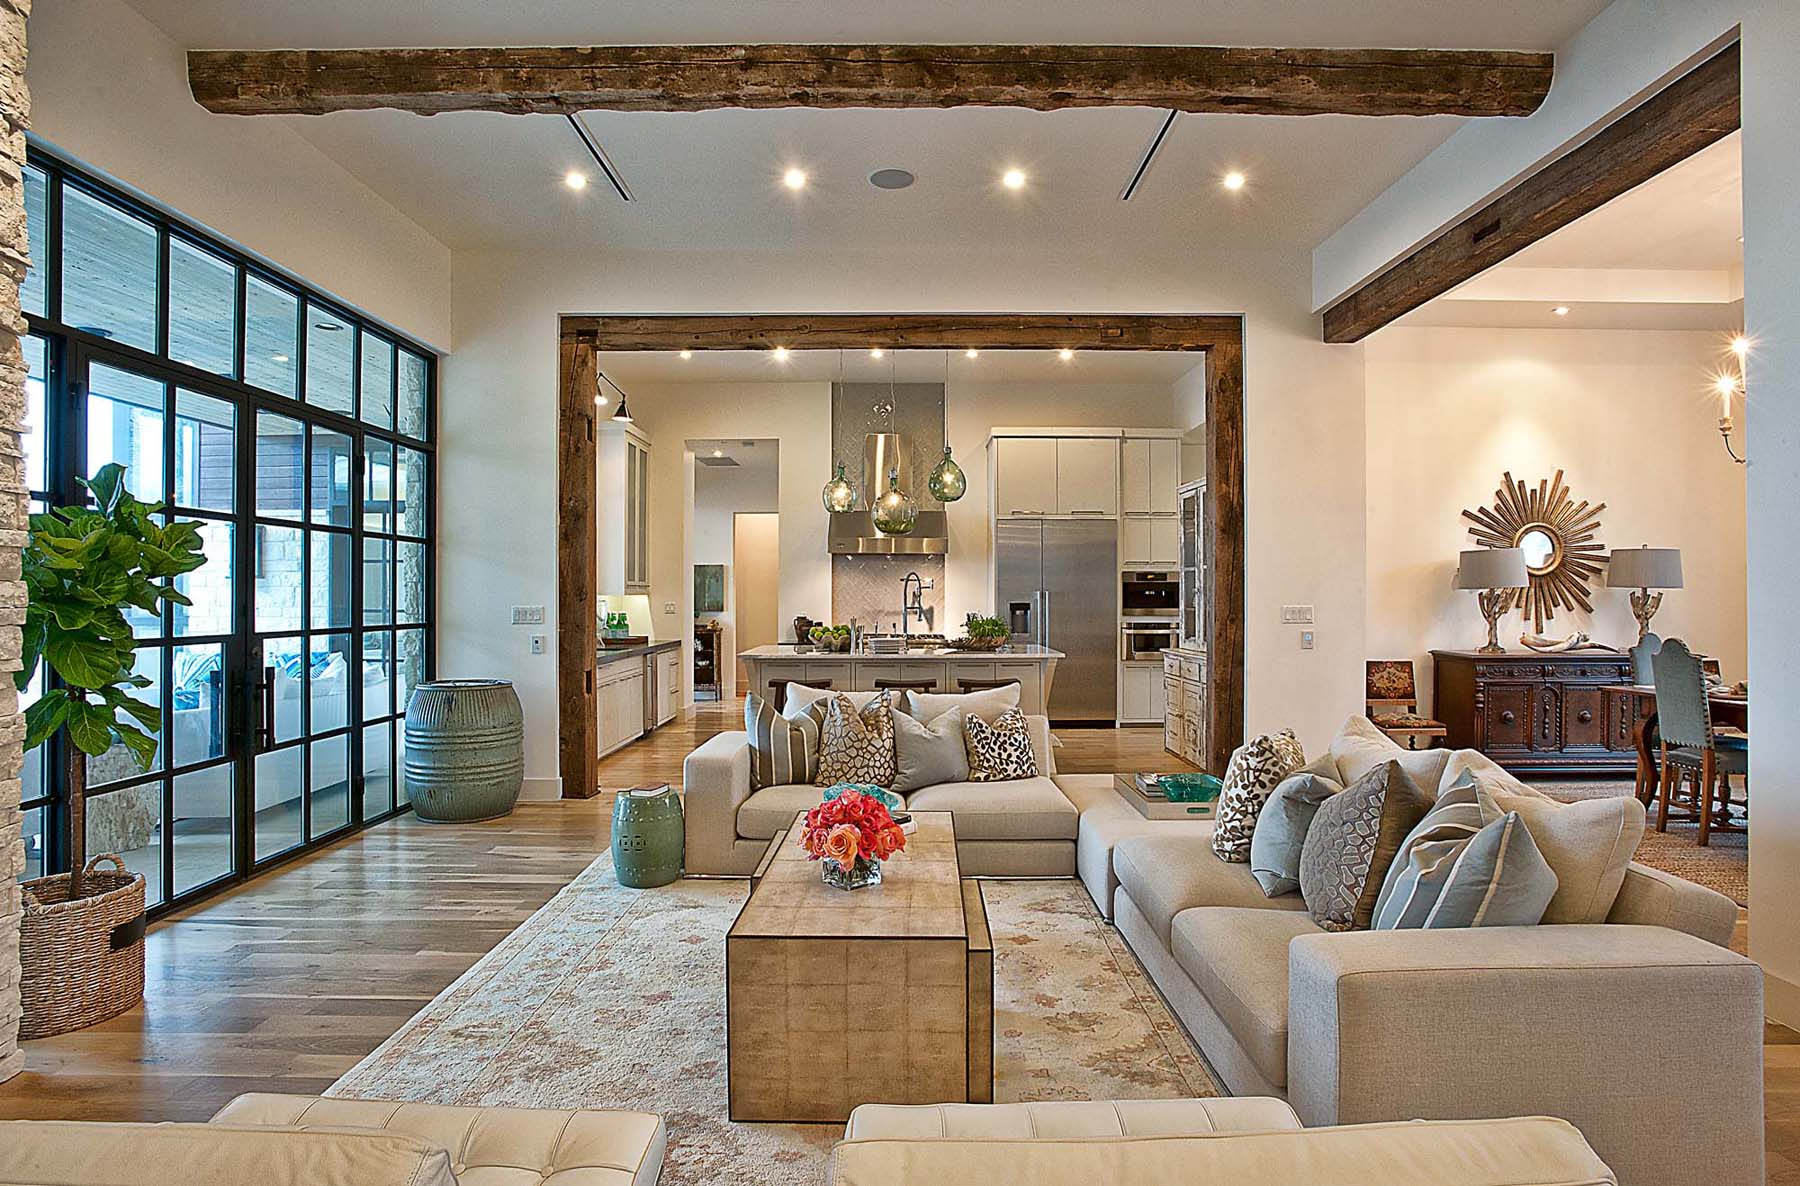 A Contemporary Home With Rustic Elements Connects To Its ... on House Interior Ideas  id=24908